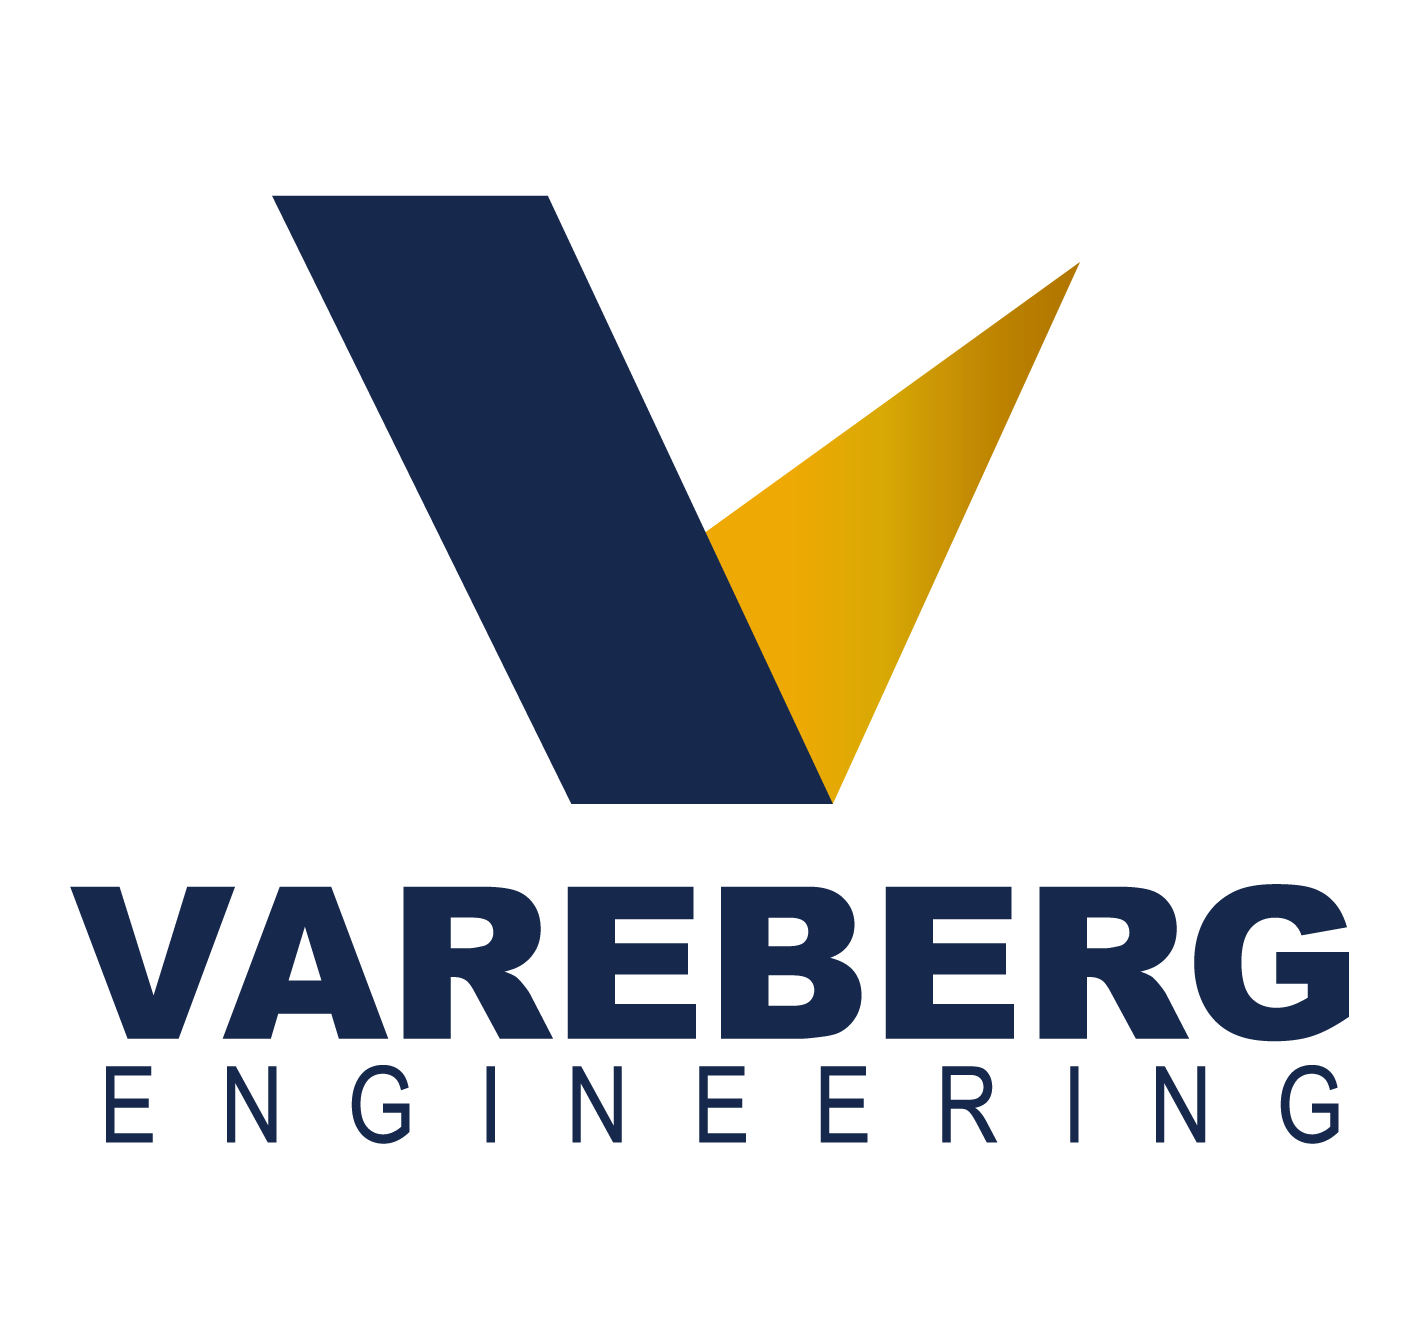 Vareberg Engineering